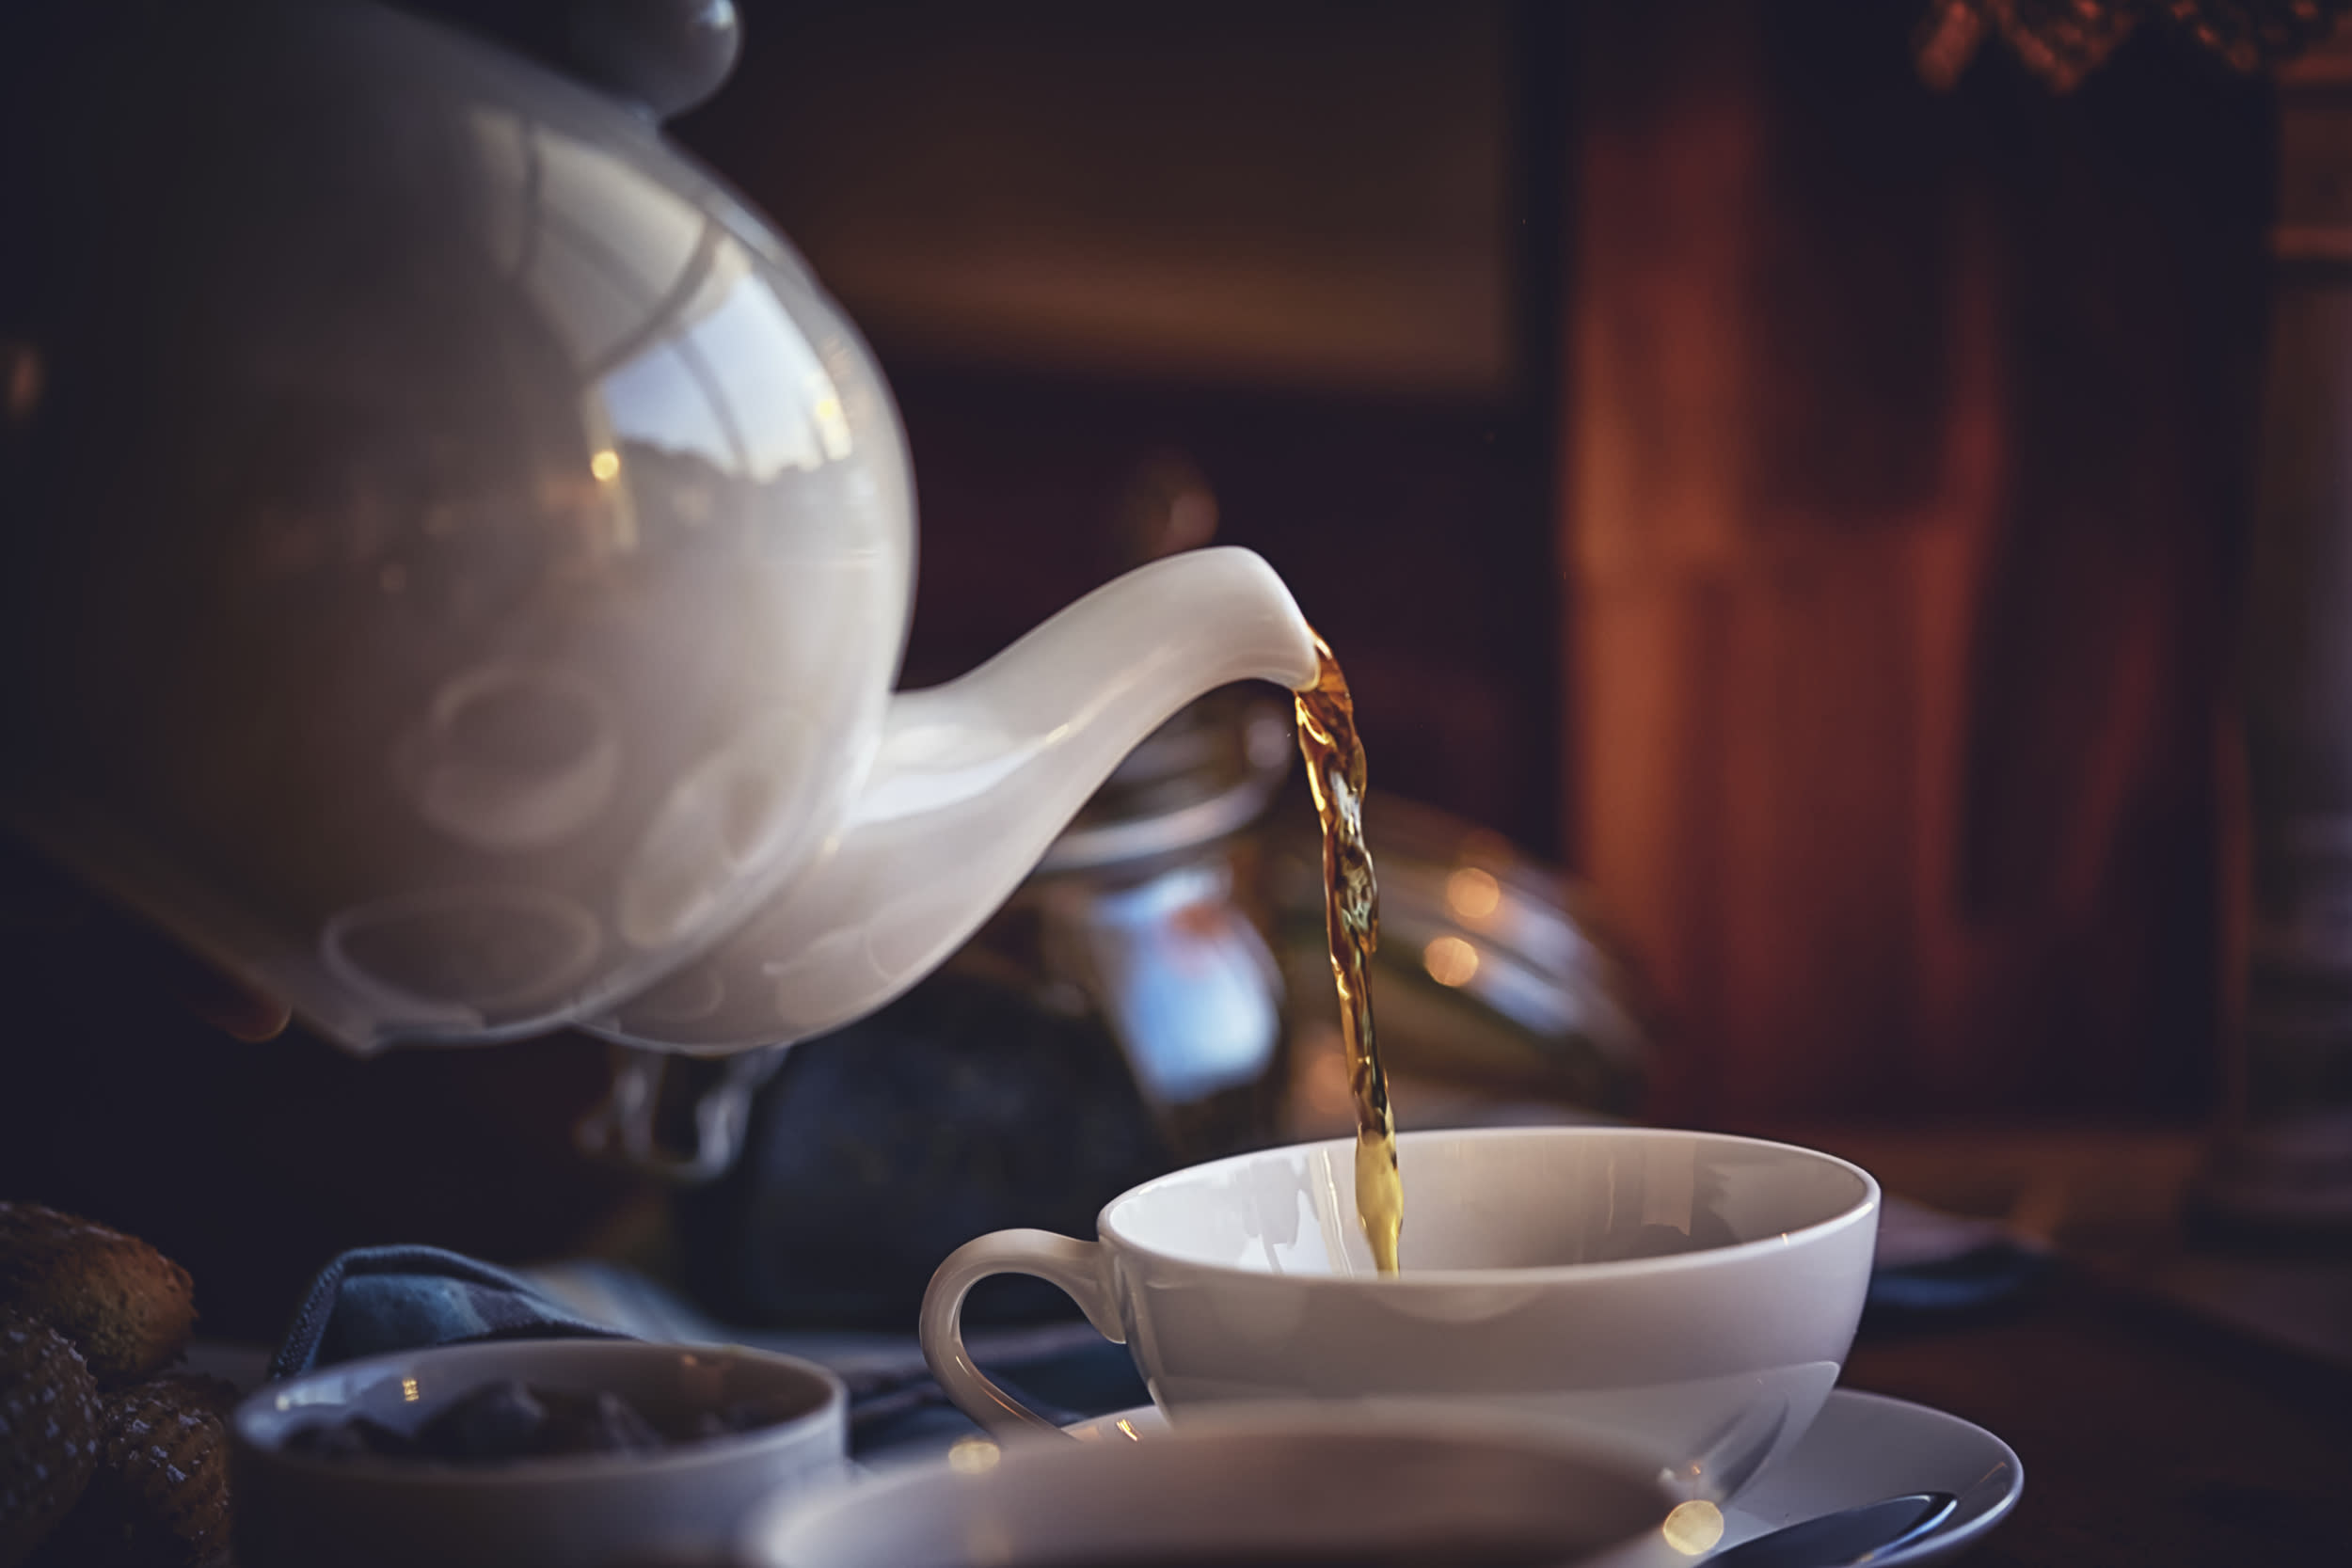 Pouring Black Tea into Cup